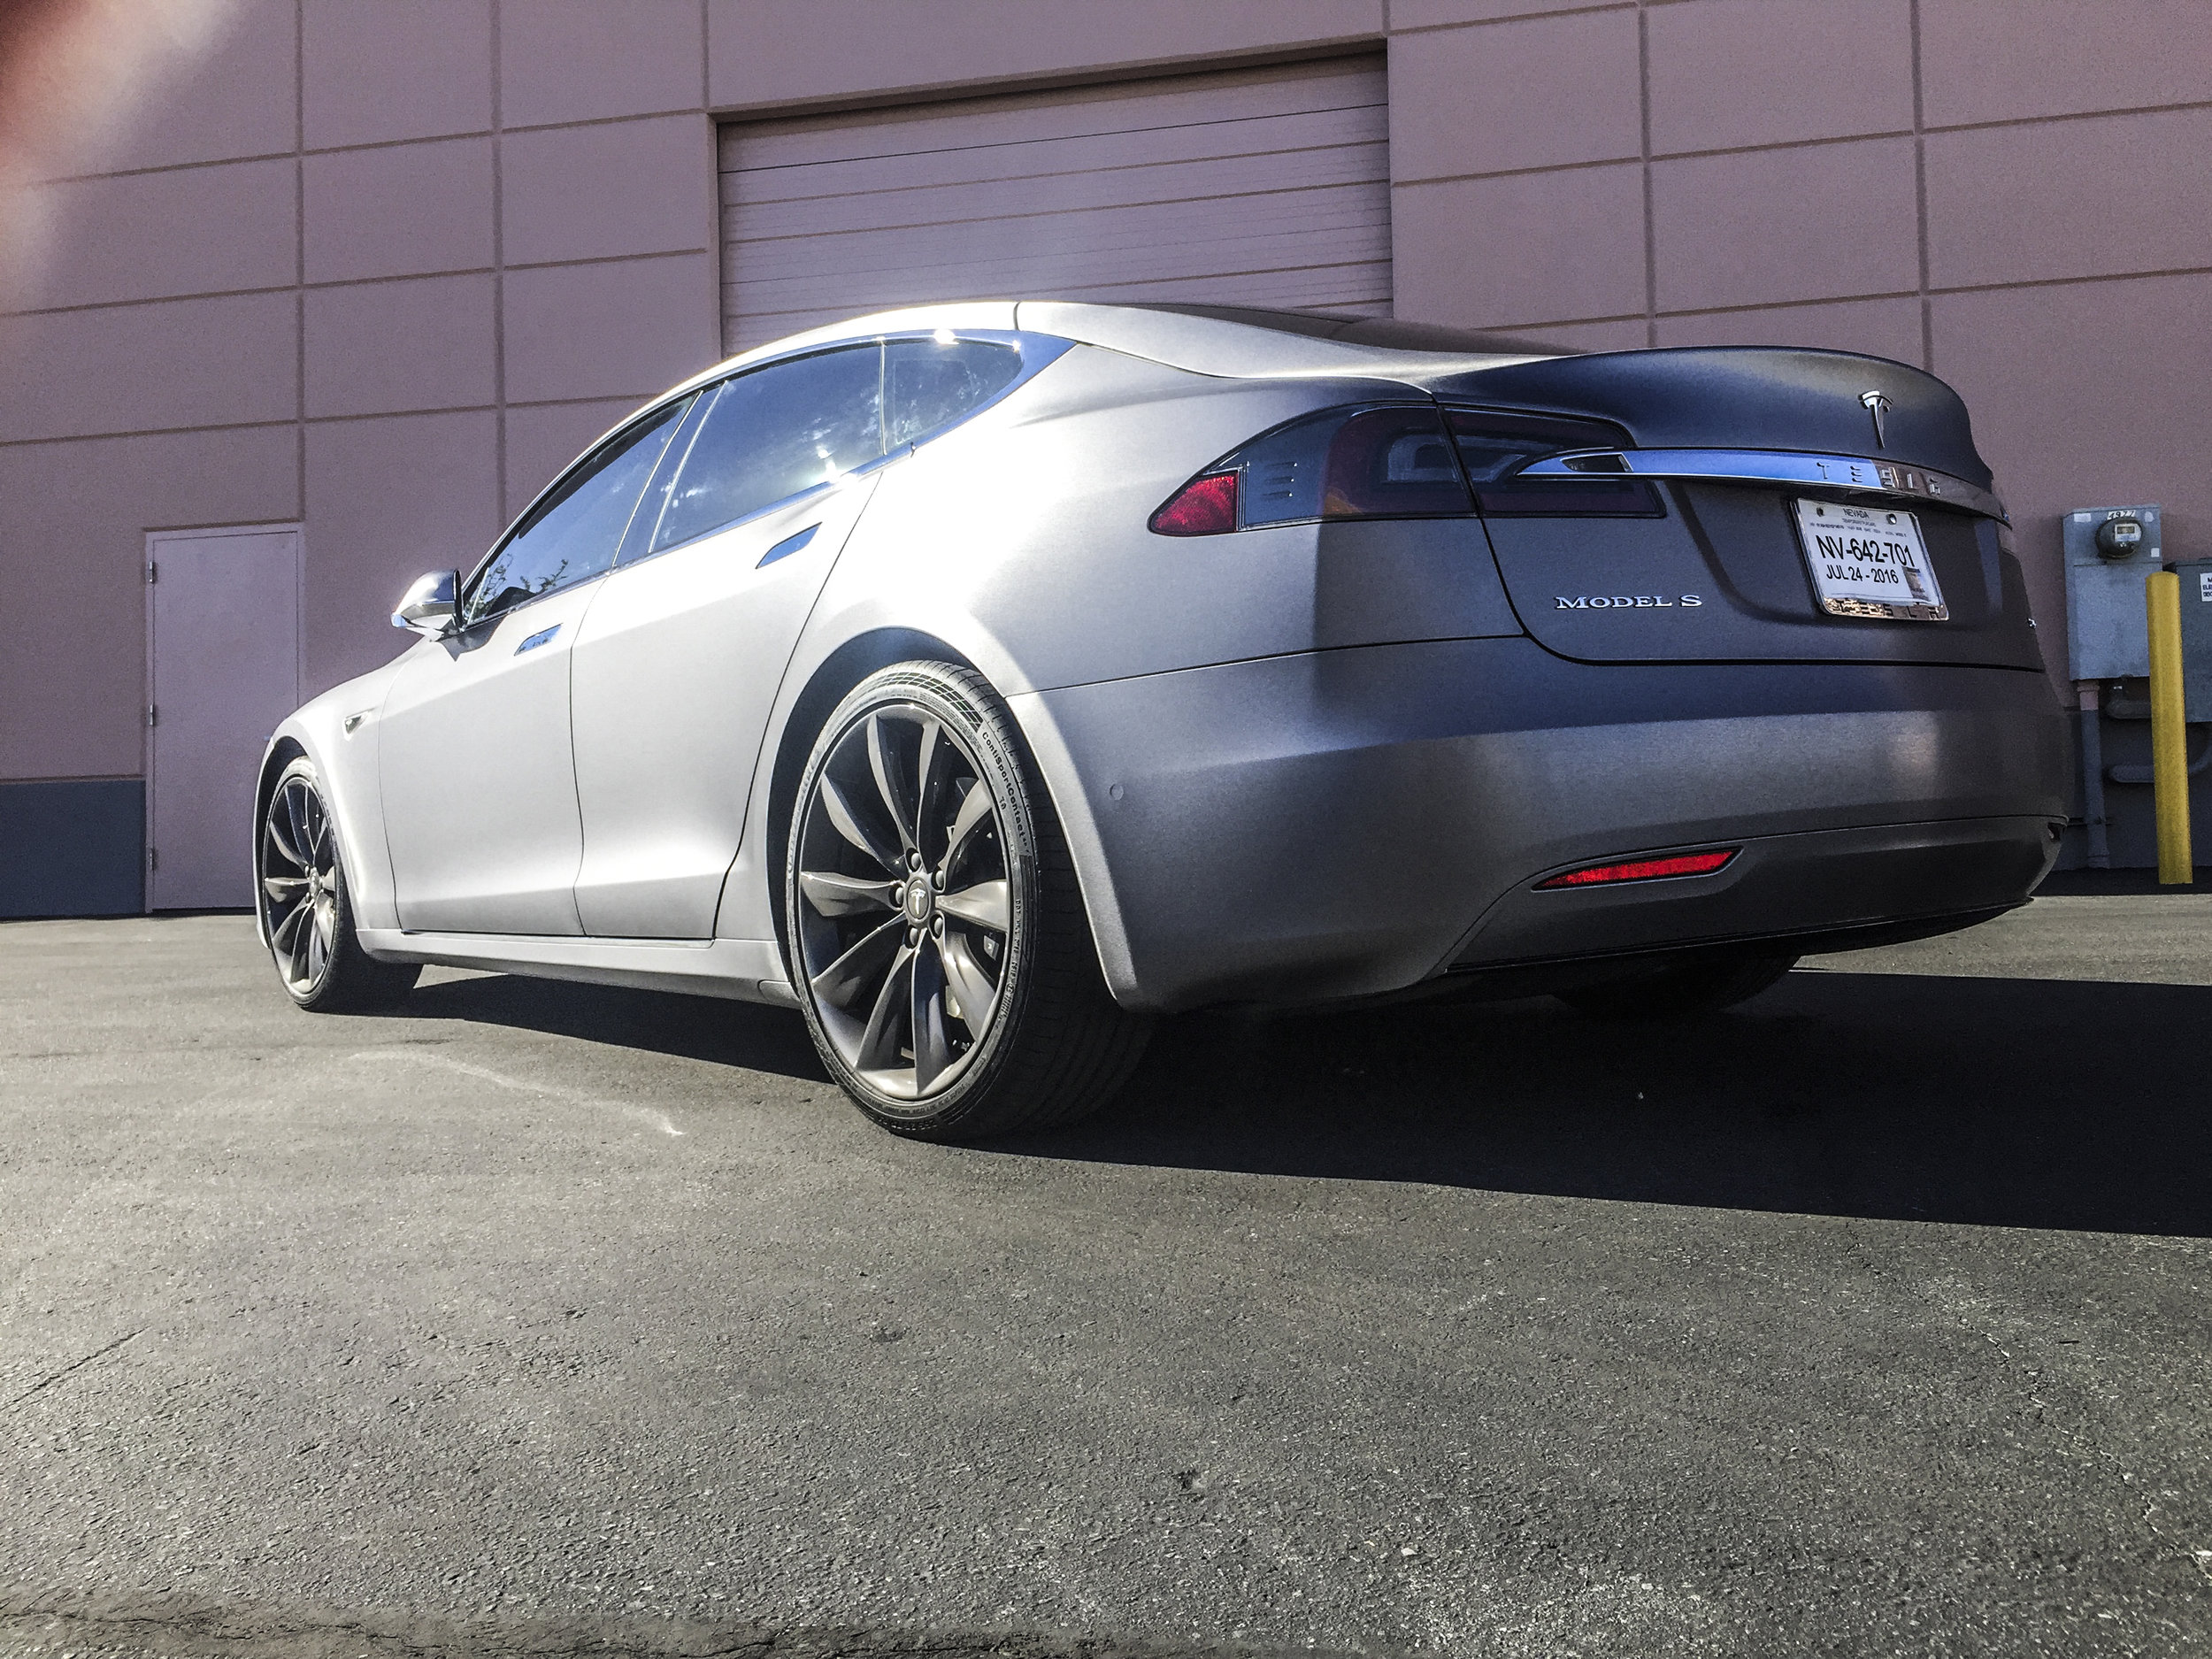 Tesla Model S - Brushed Steel Wrap